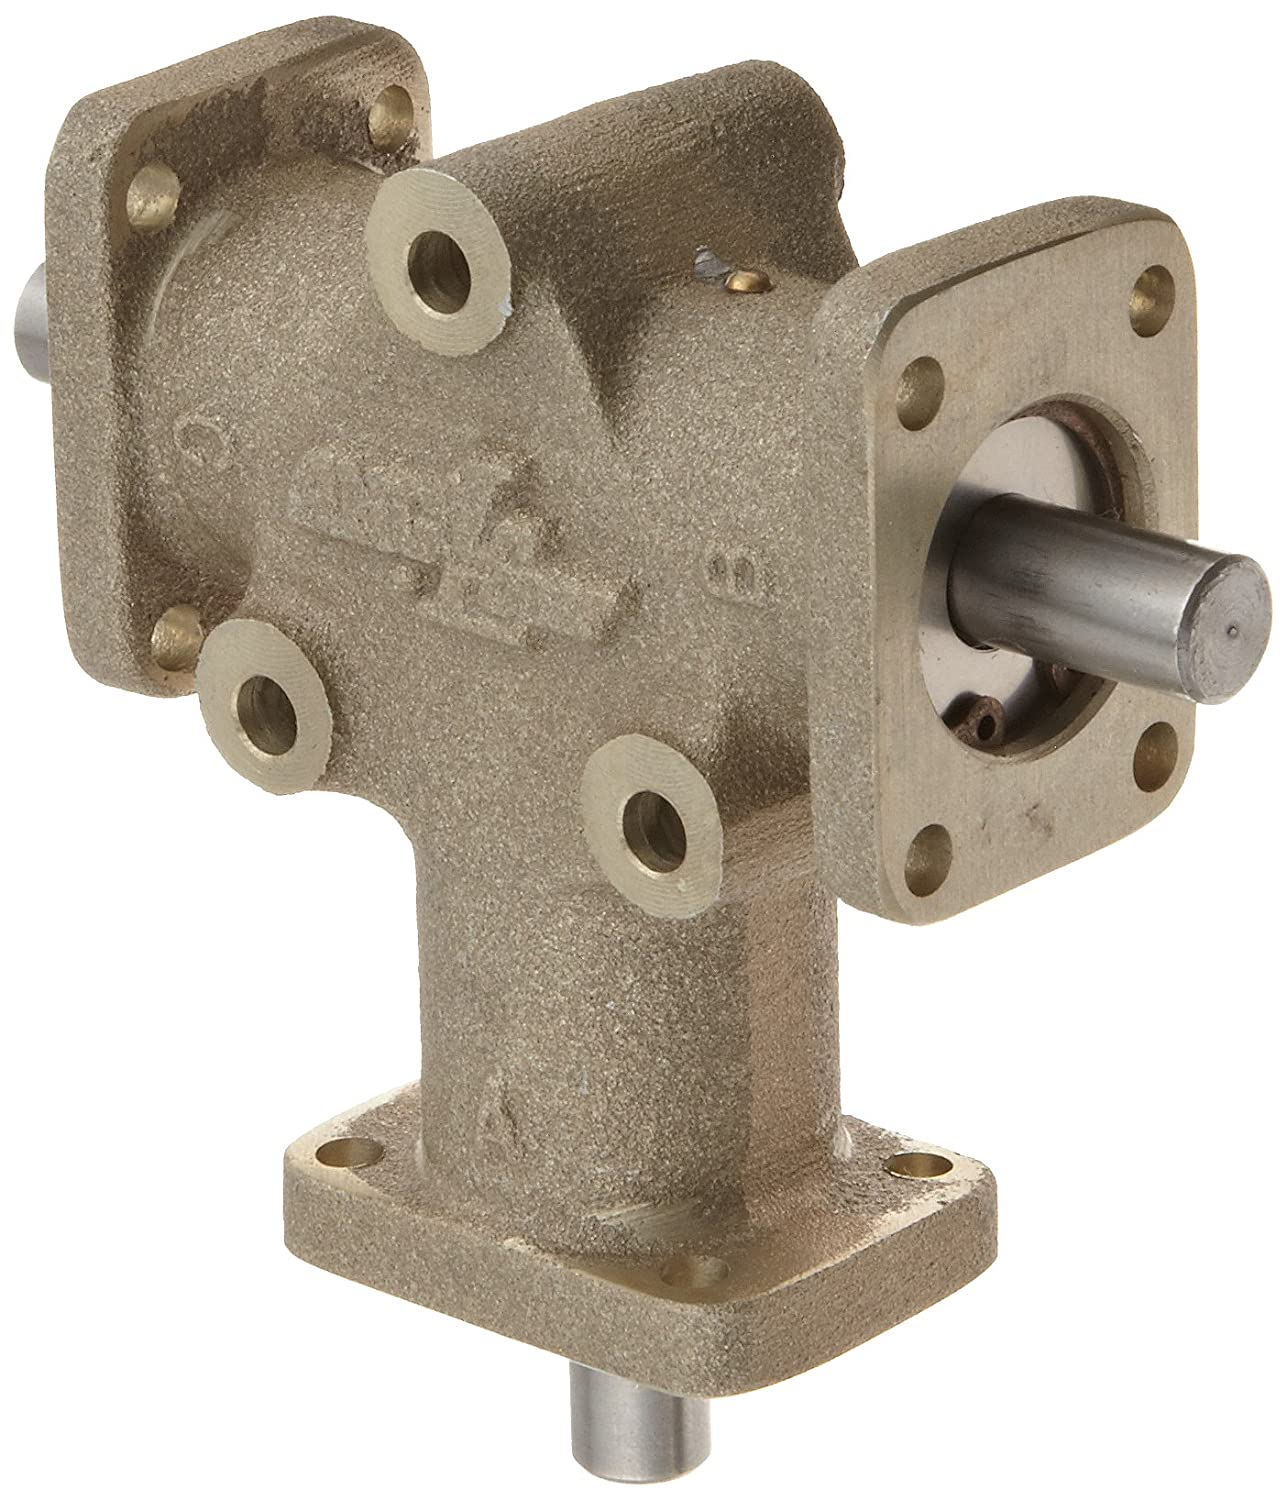 Image of Gearheads & Speed Reducers Andantex R3103 Anglgear Right Angle Bevel Gear Drive, Universal Mounting, Two Output Shafts, 3 Flanges, Inch, 3/8'Shaft Diameter, 1:1 Ratio.34Hp at 1750rpm